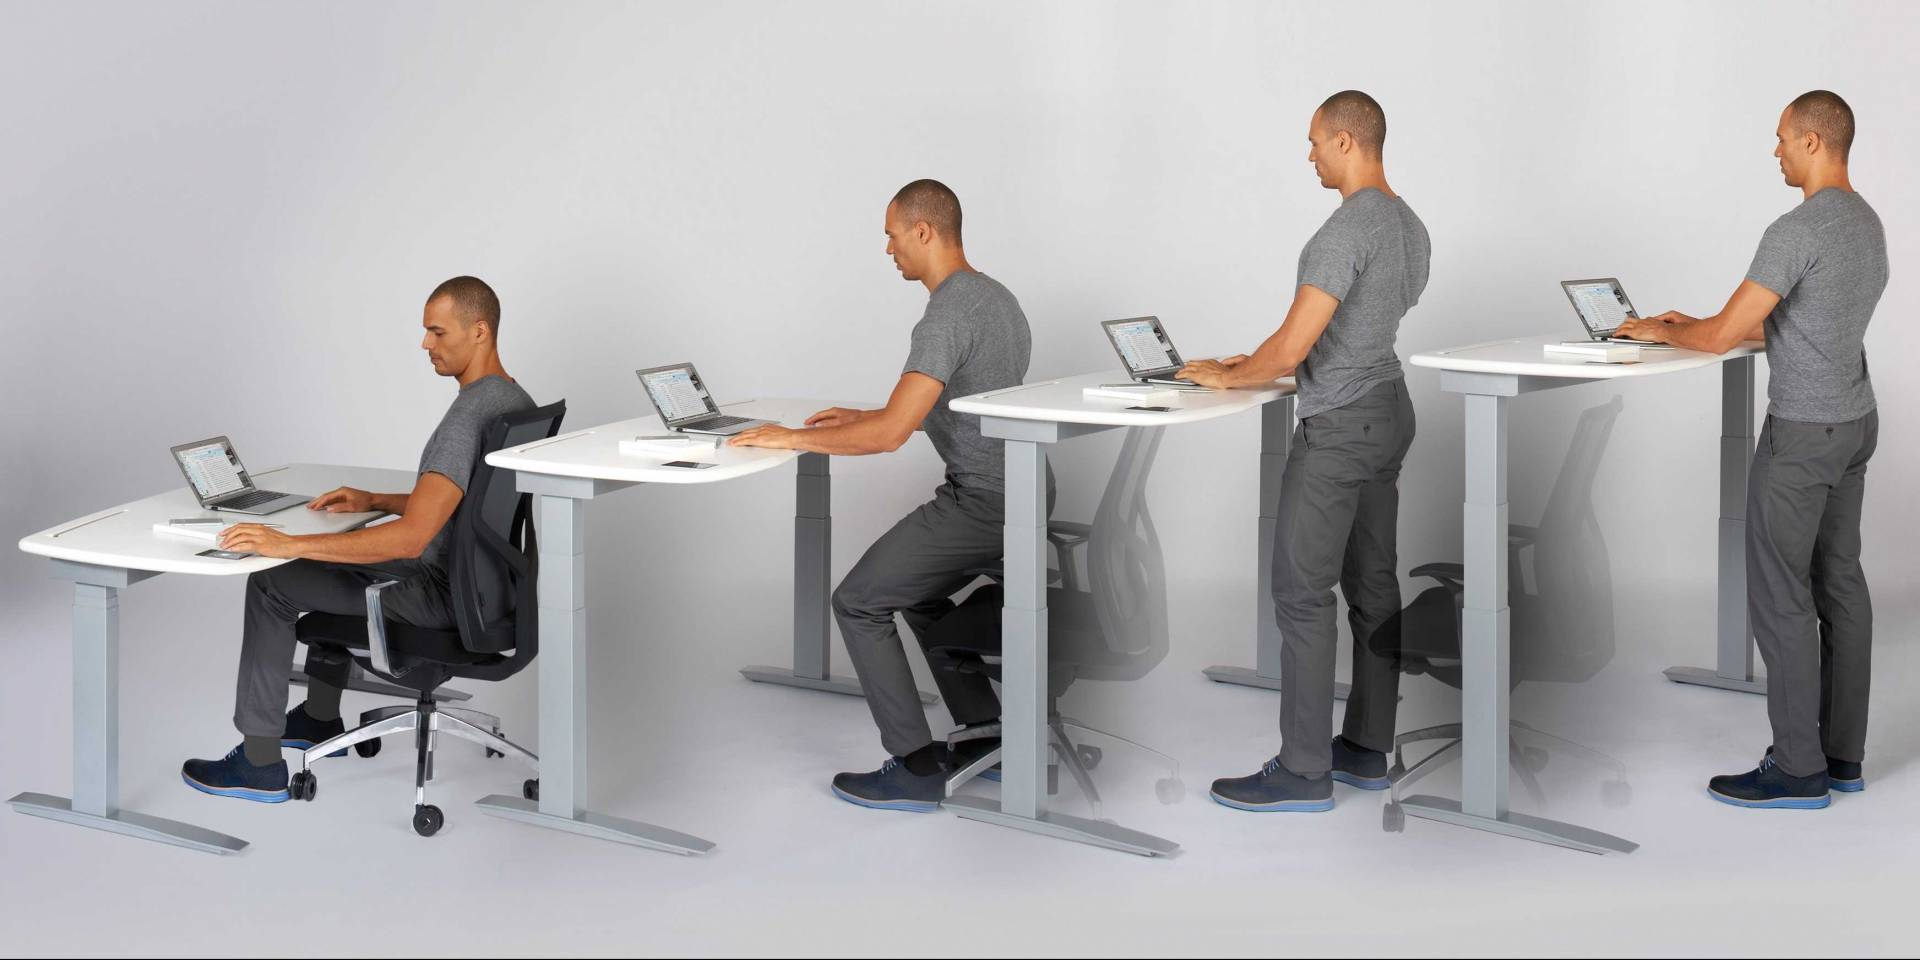 Sensational Pros Cons Of Using A Standing Desk At Work Download Free Architecture Designs Scobabritishbridgeorg